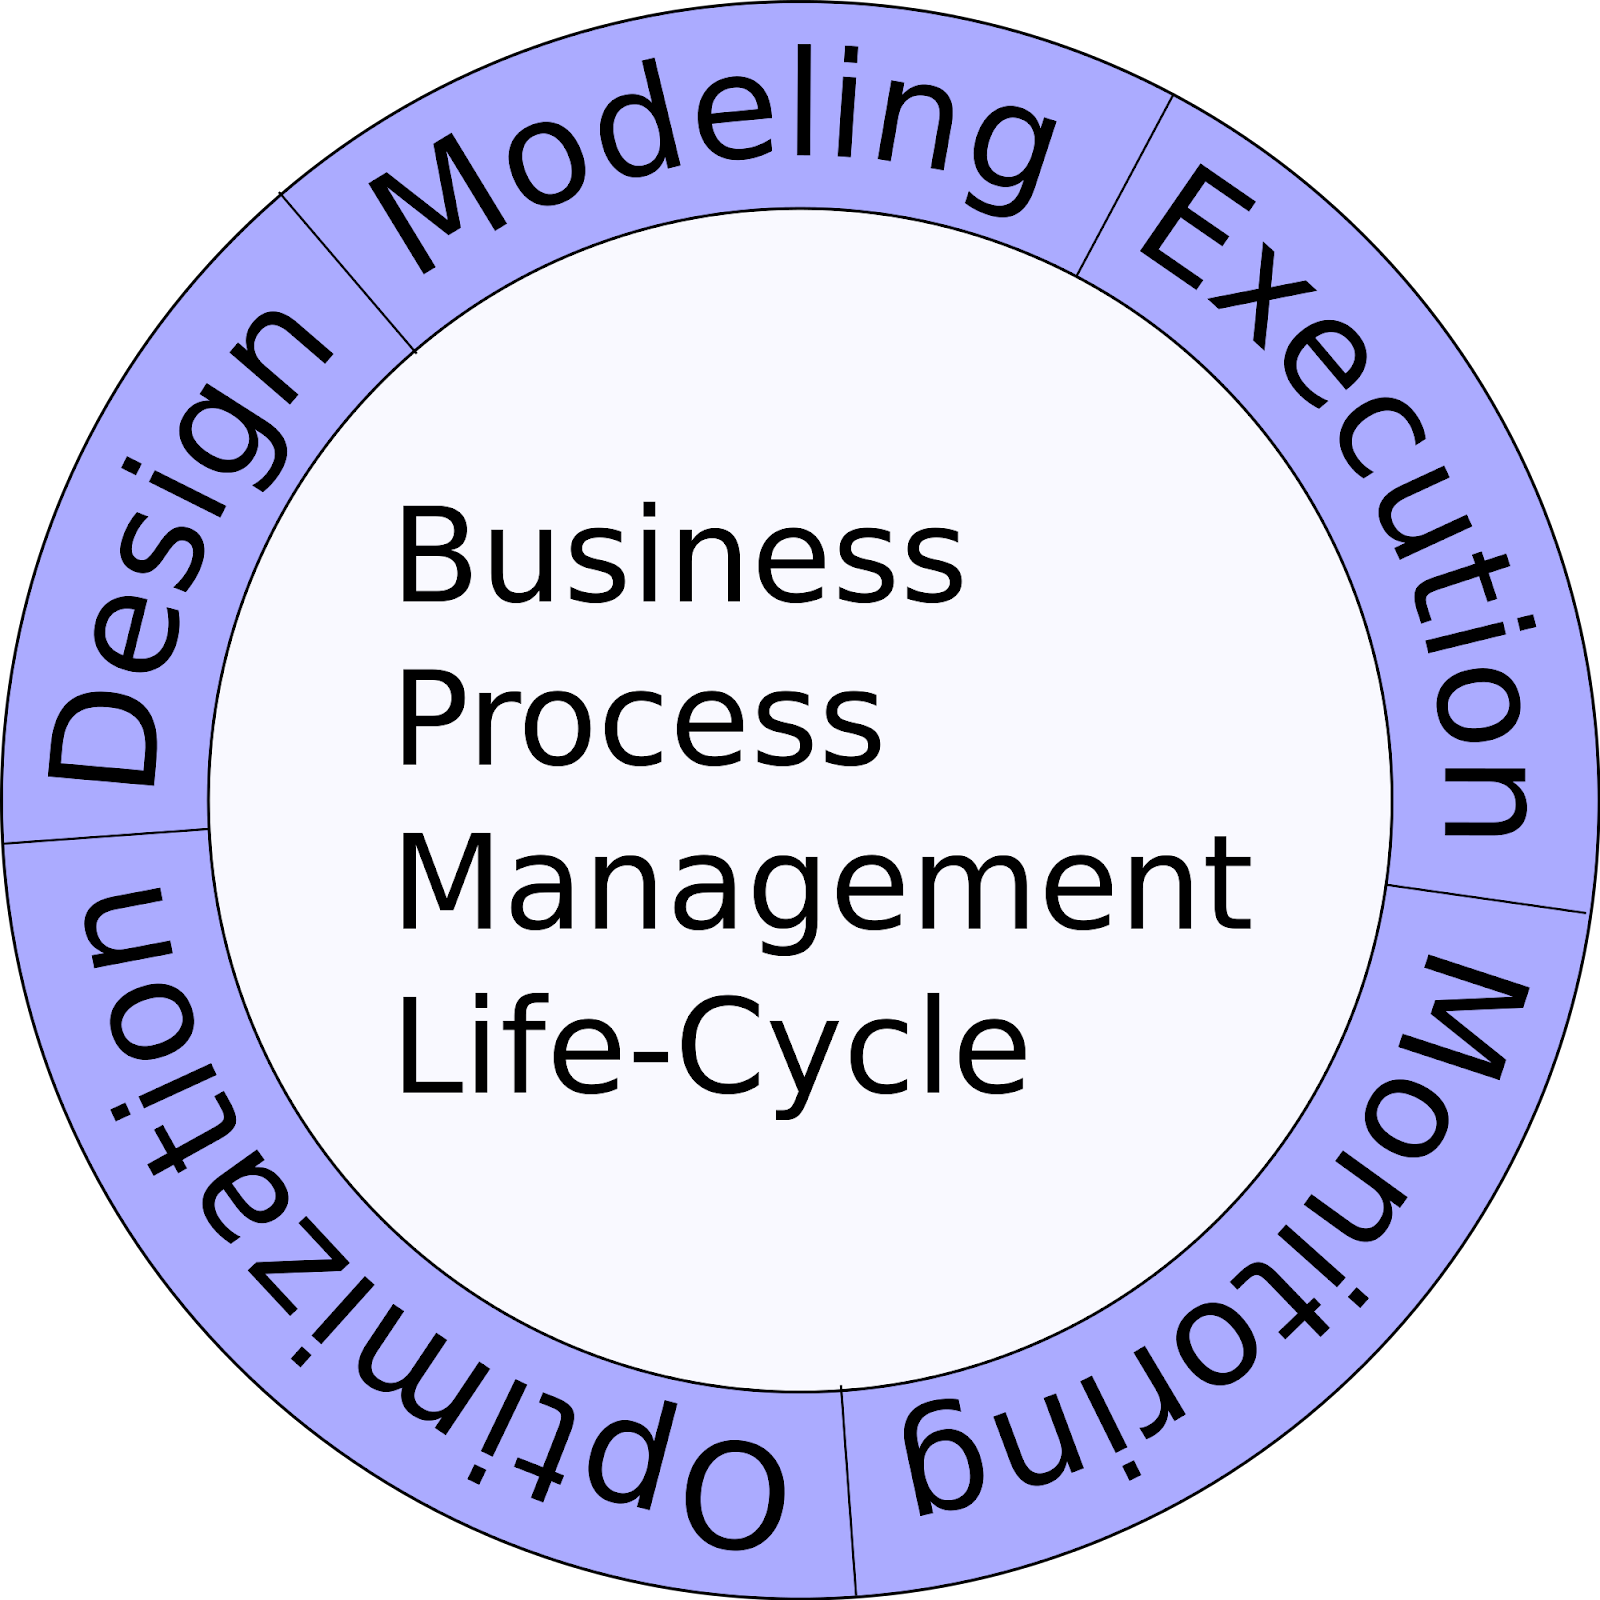 2000px-Business_Process_Management_Life-Cycle.svg.png